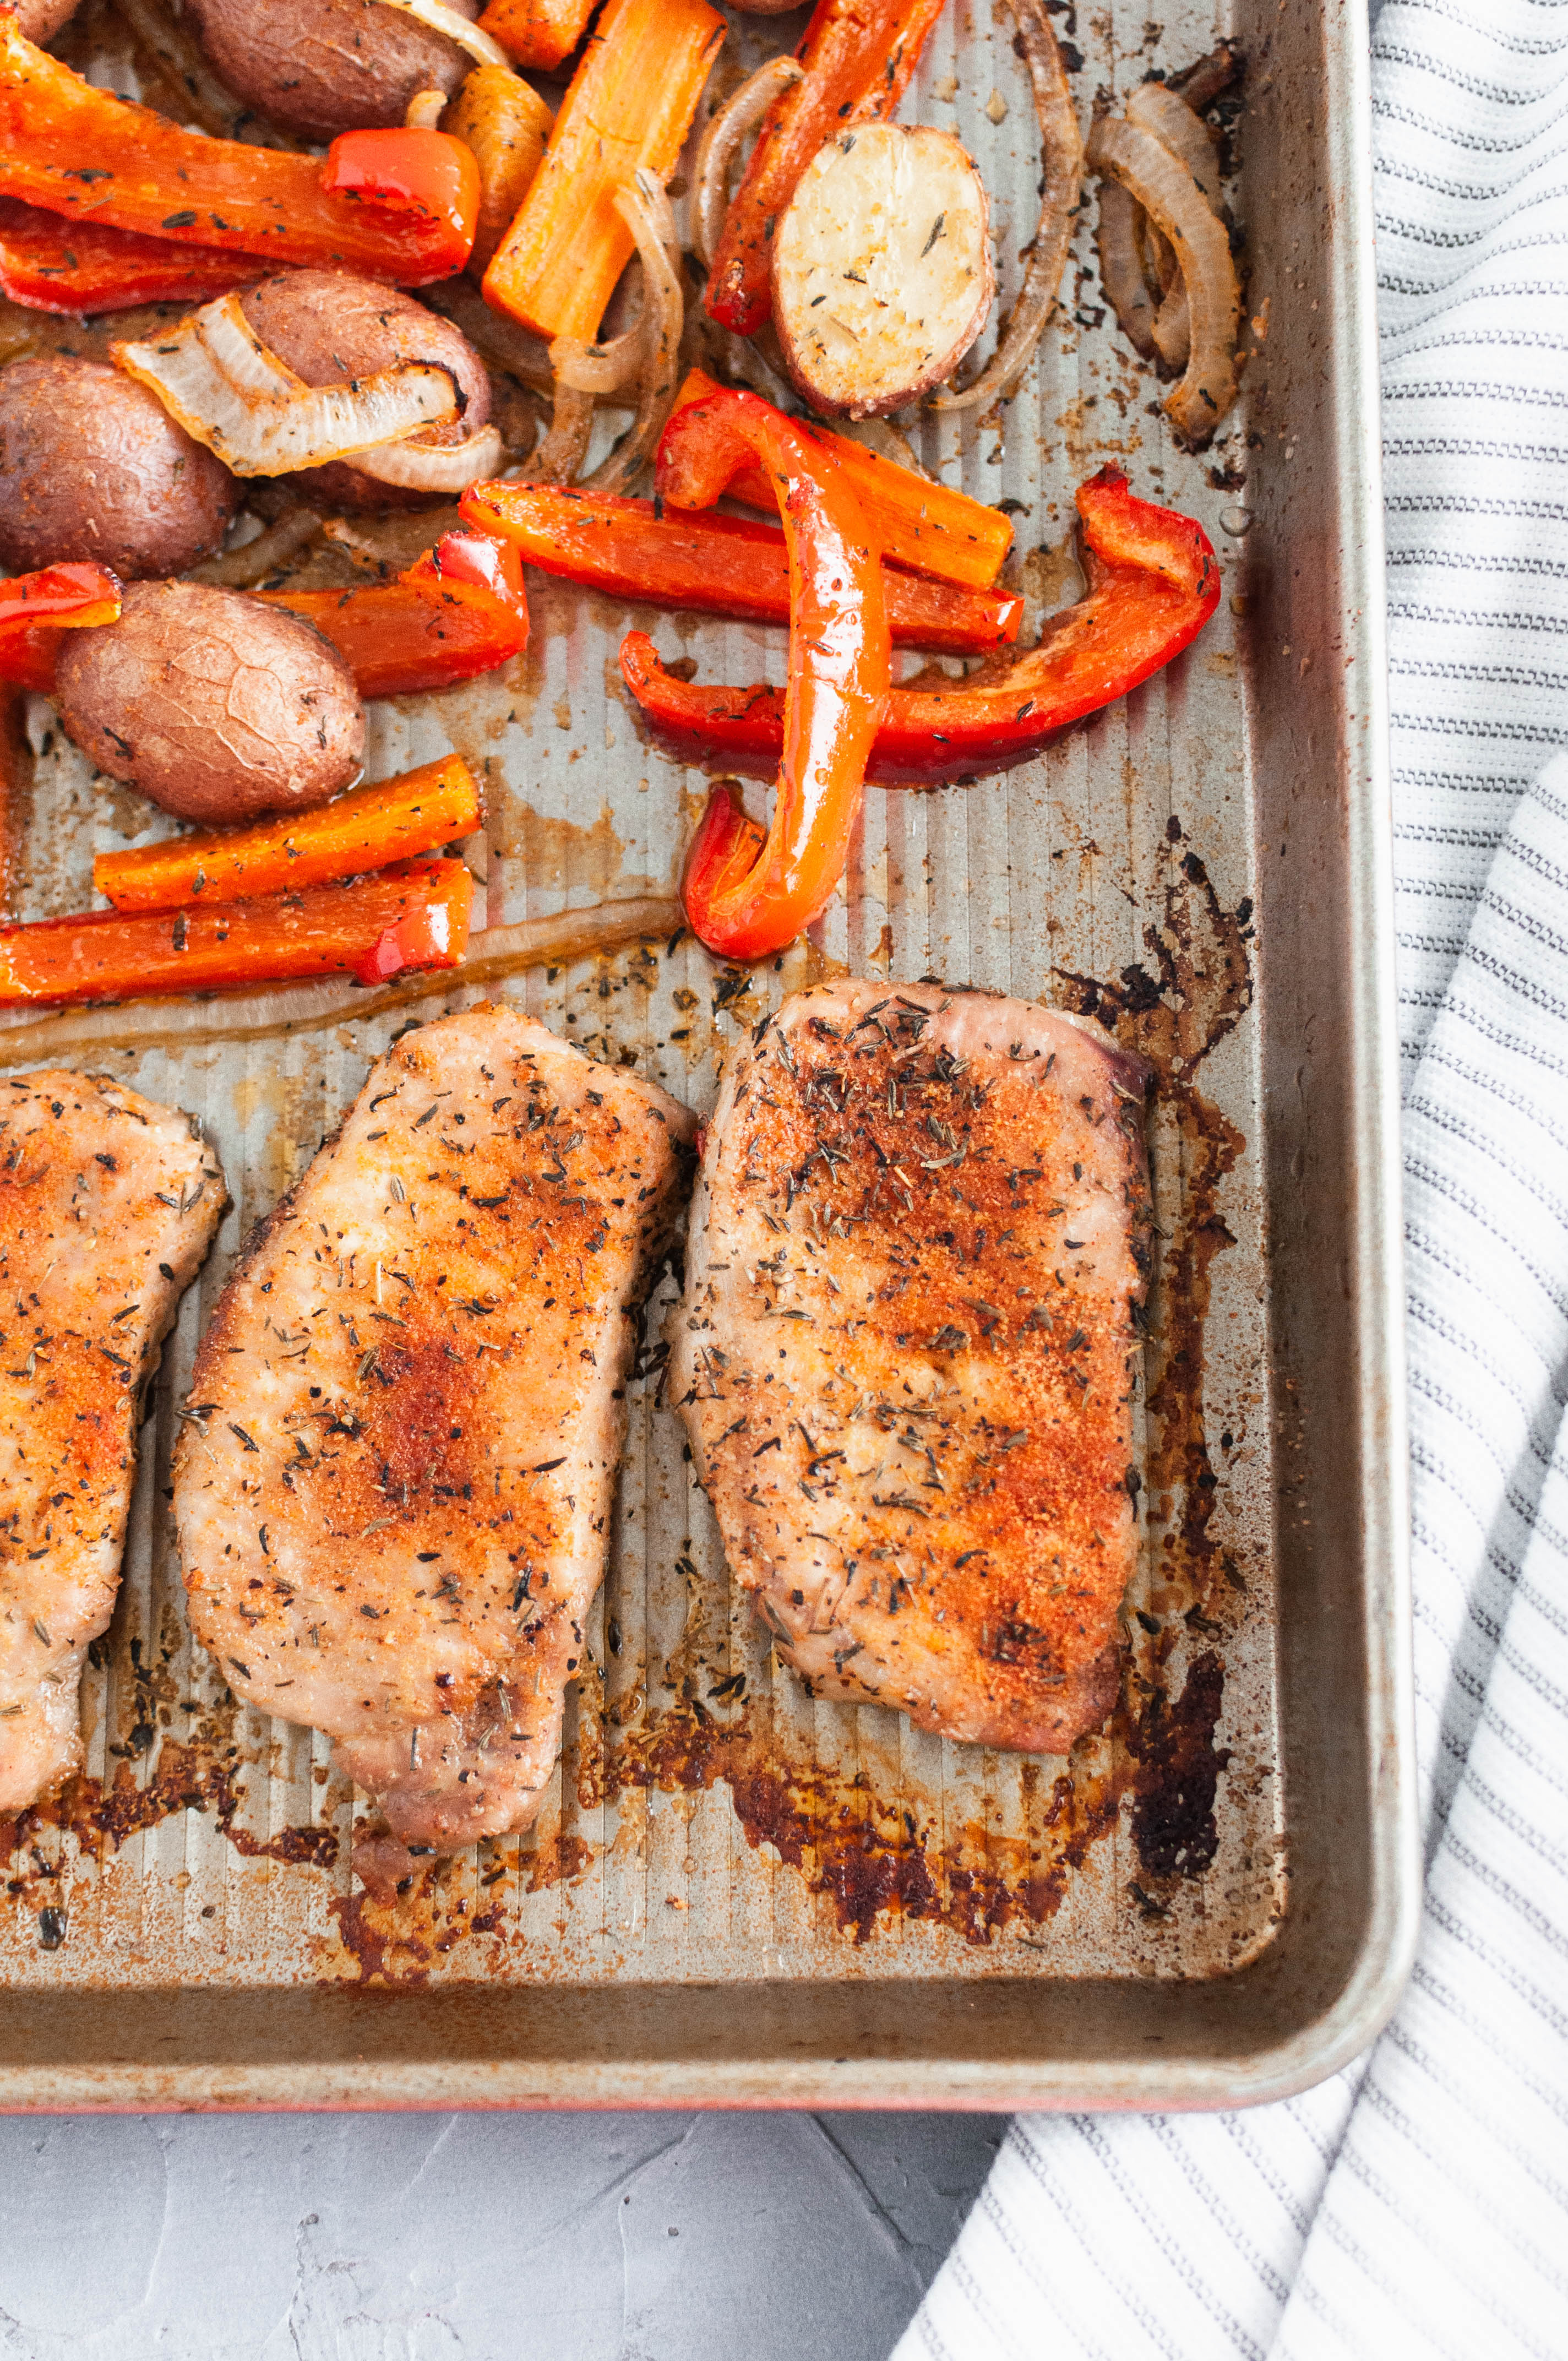 If you need a quick, simple weeknight dinner, look no further. This Sheet Pan Pork Chops and Vegetables is all cooked on one pan in less than 30 minutes and packed with flavor.